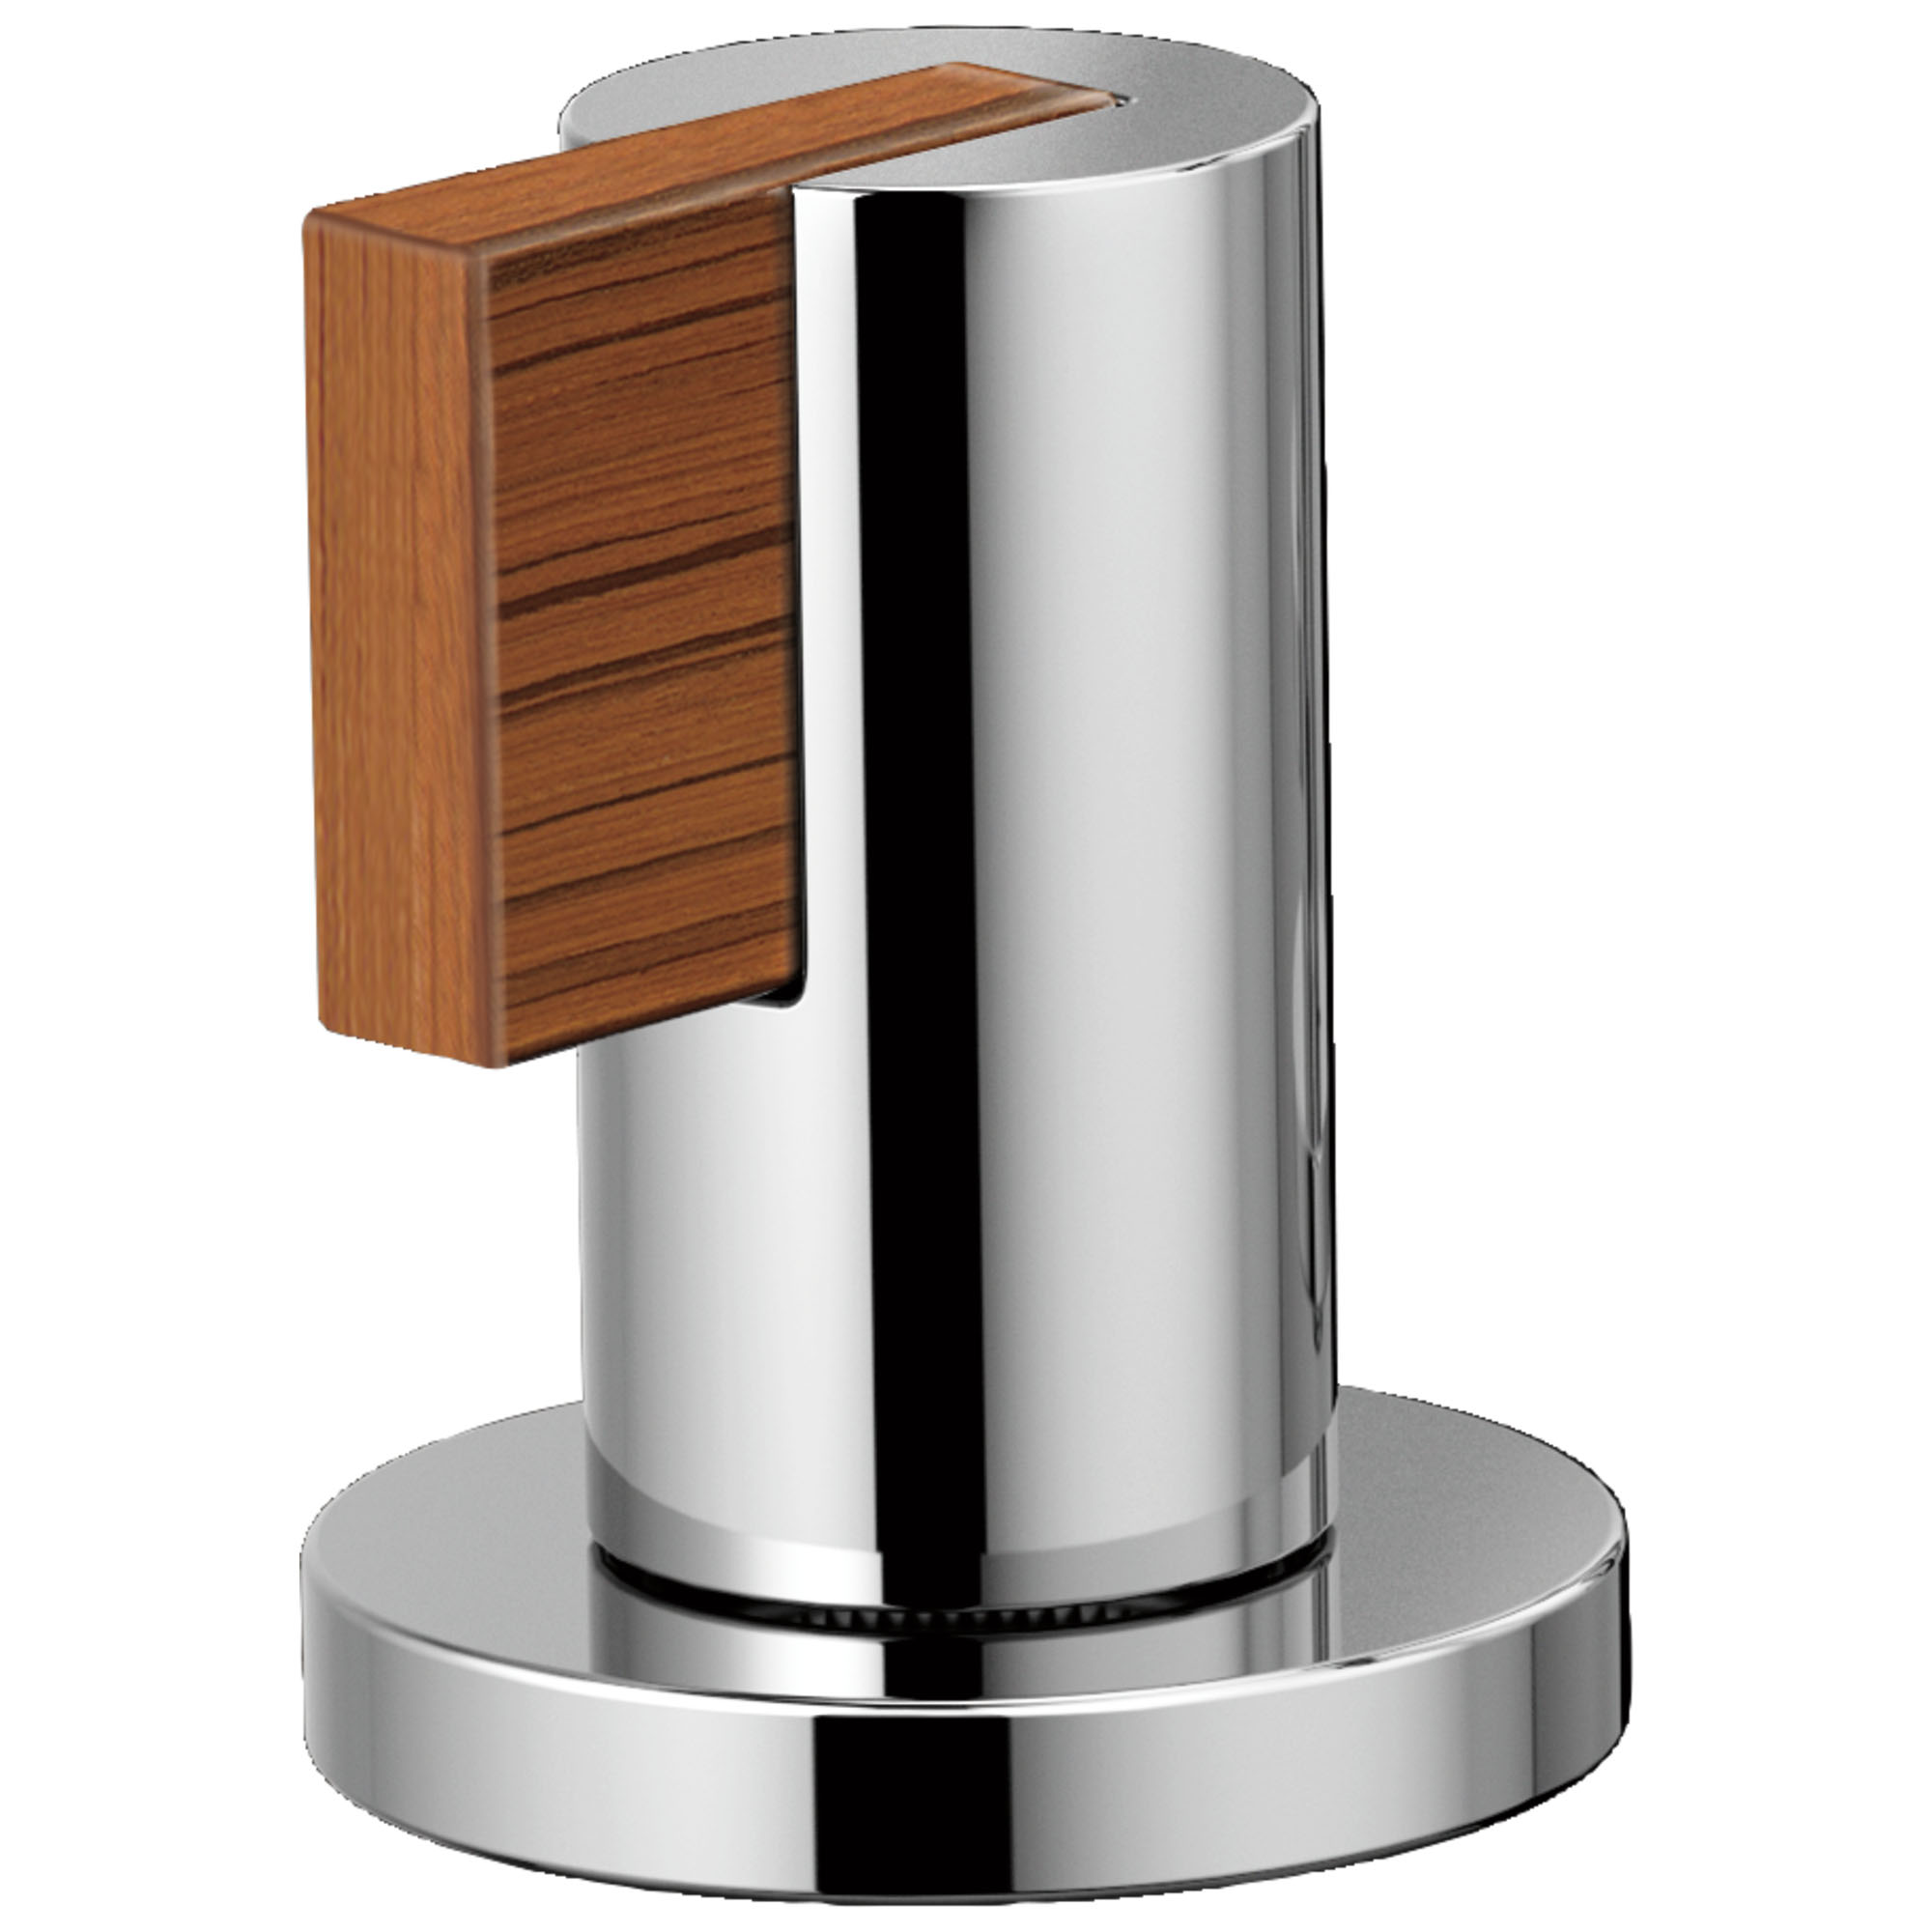 Brizo HL5332-PCTK Litze Widespread Handle Kit with Lever - Polished Chrome/Teak Wood